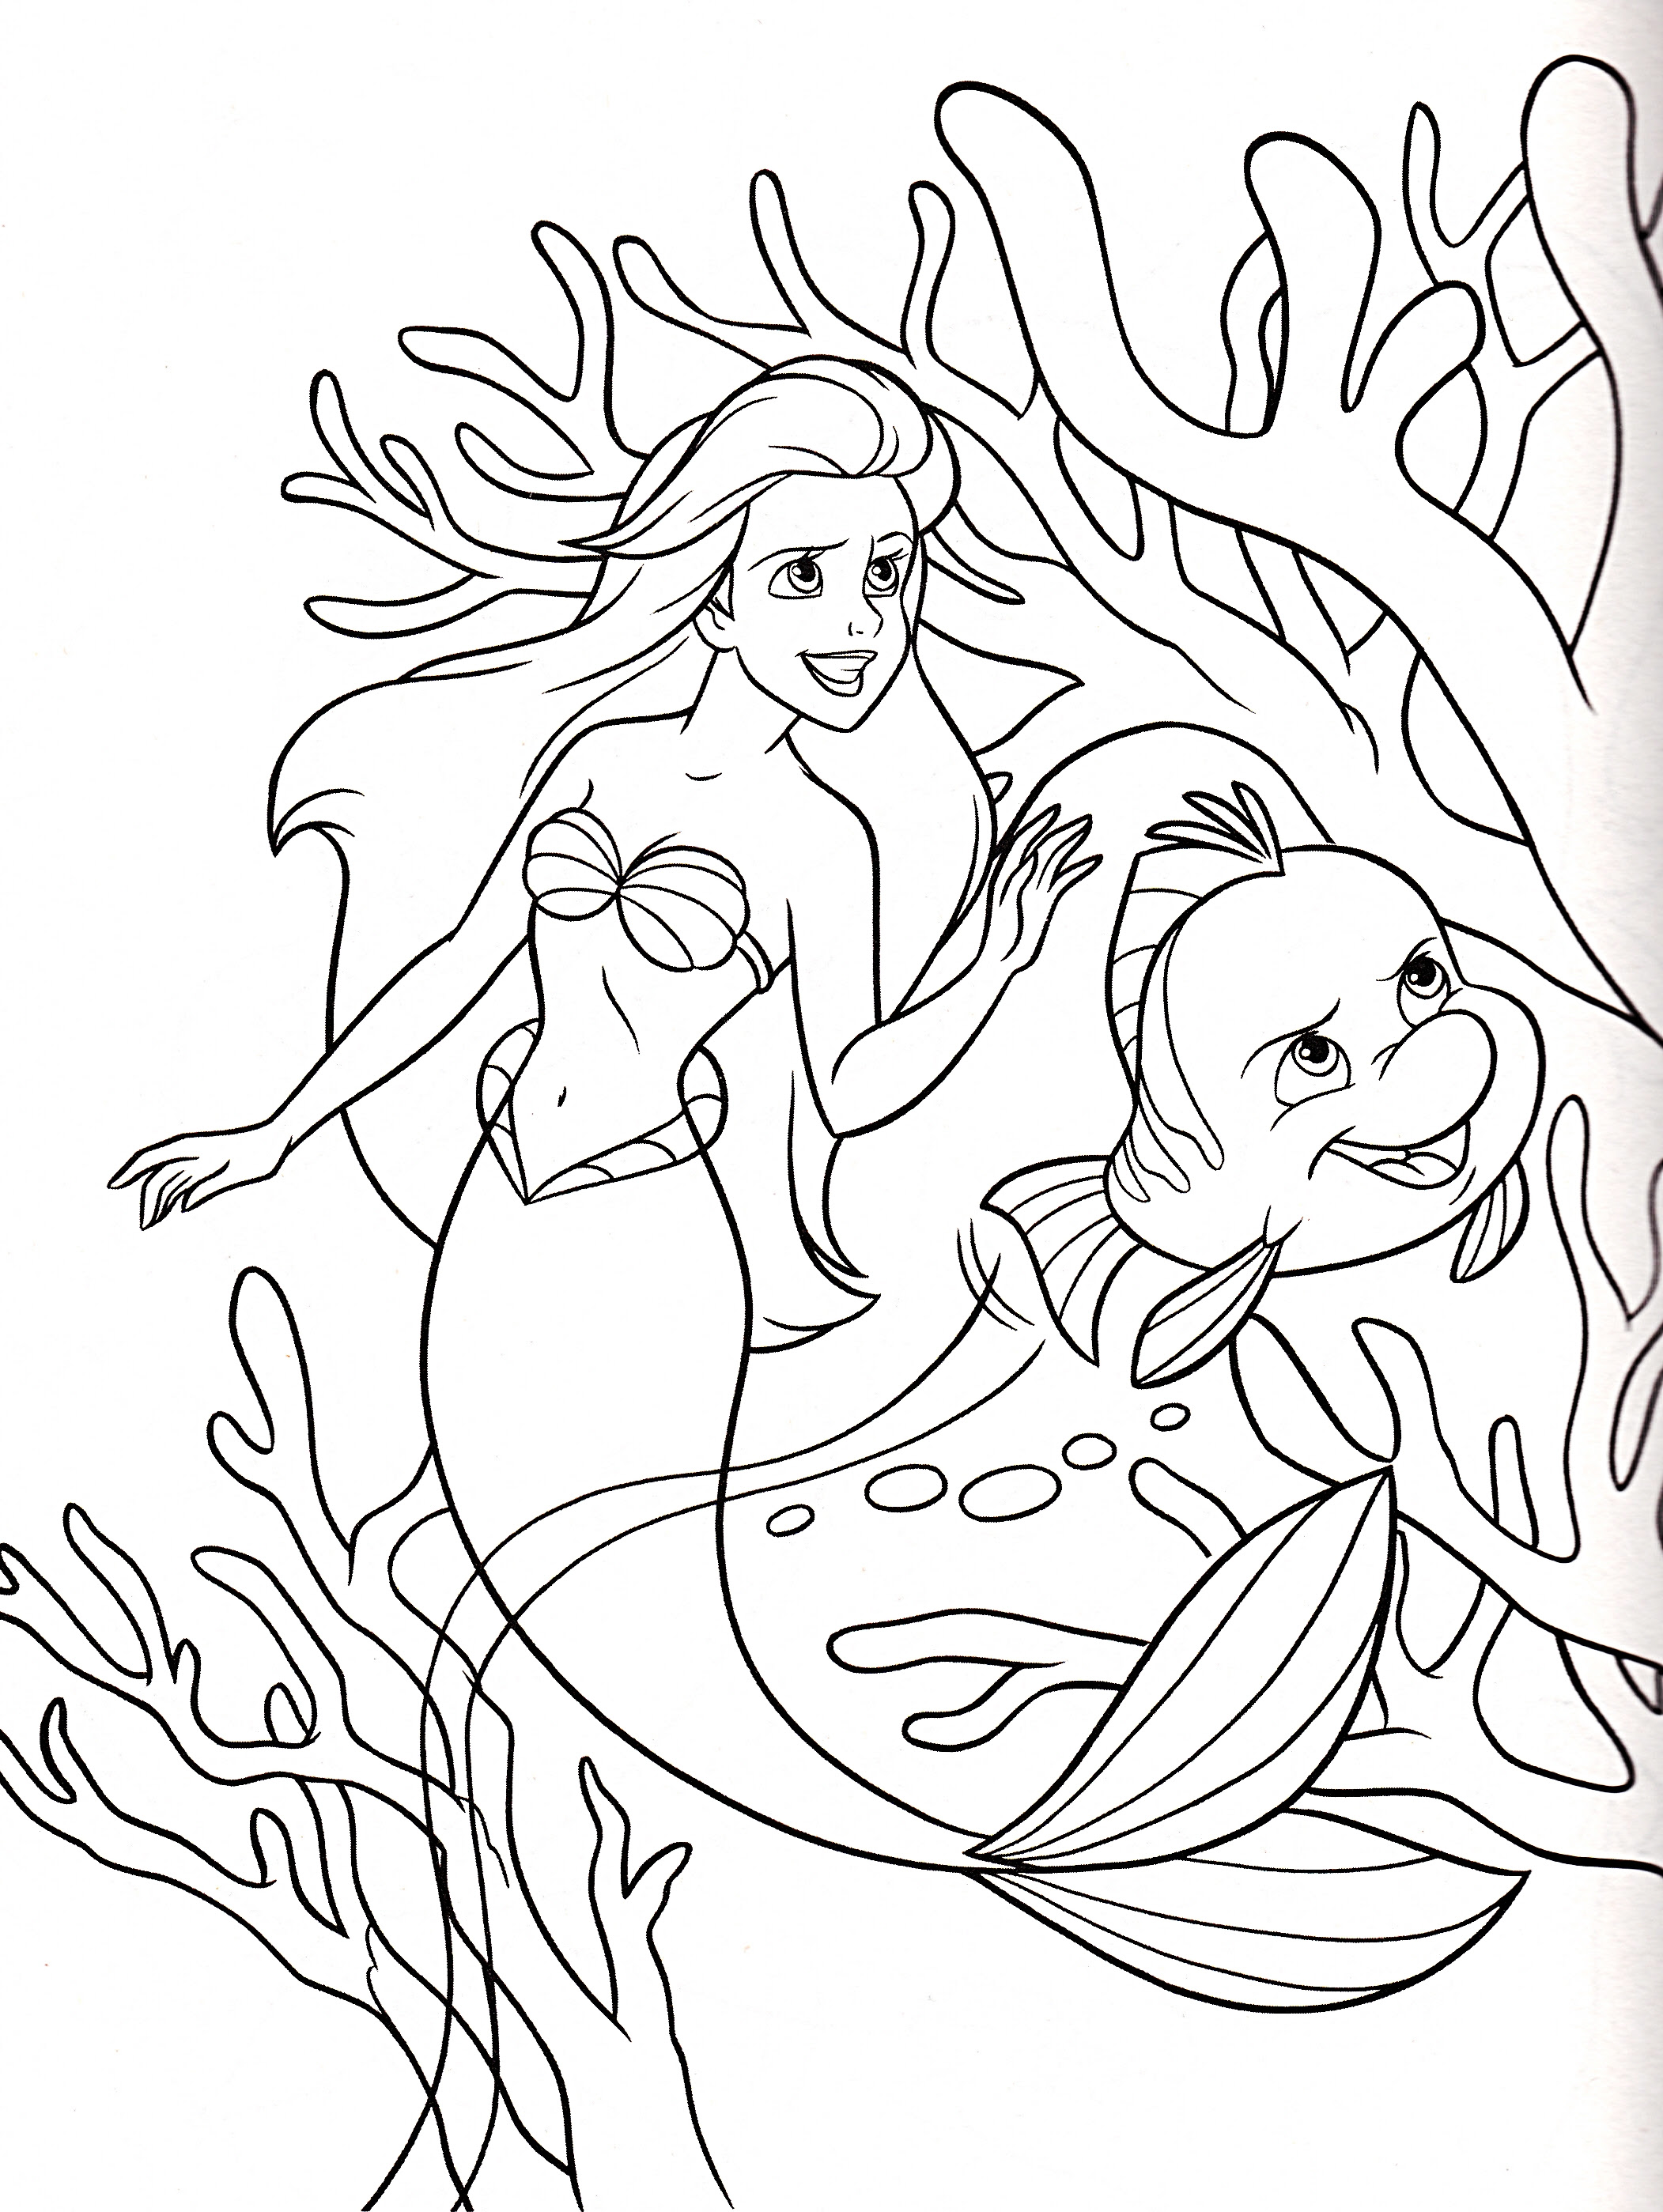 Walt Disney Coloring Pages Princess Ariel & Flounder